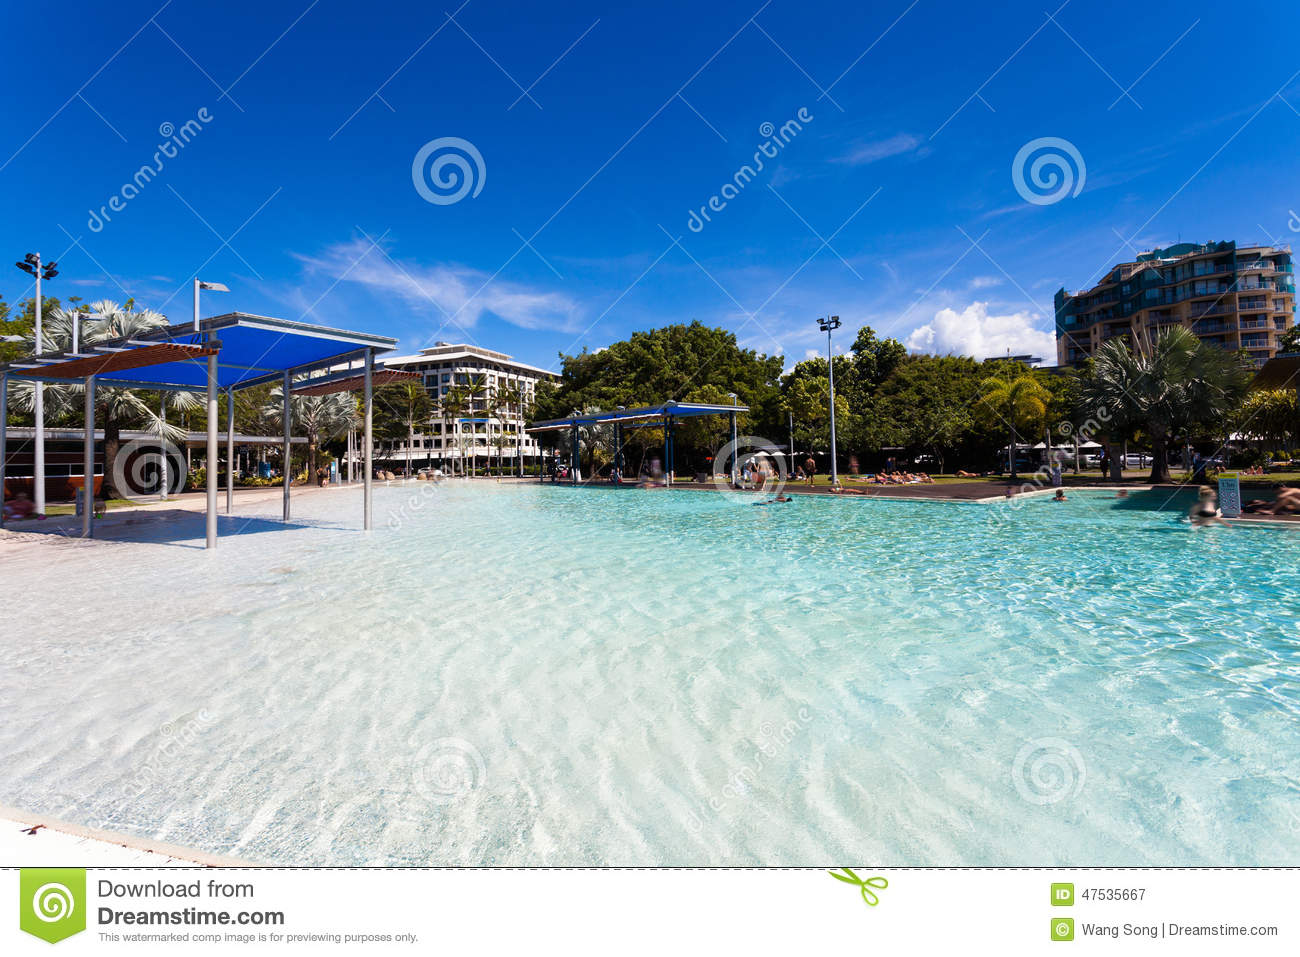 Ville de cairns du queensland image stock image 47535667 for Piscine destock